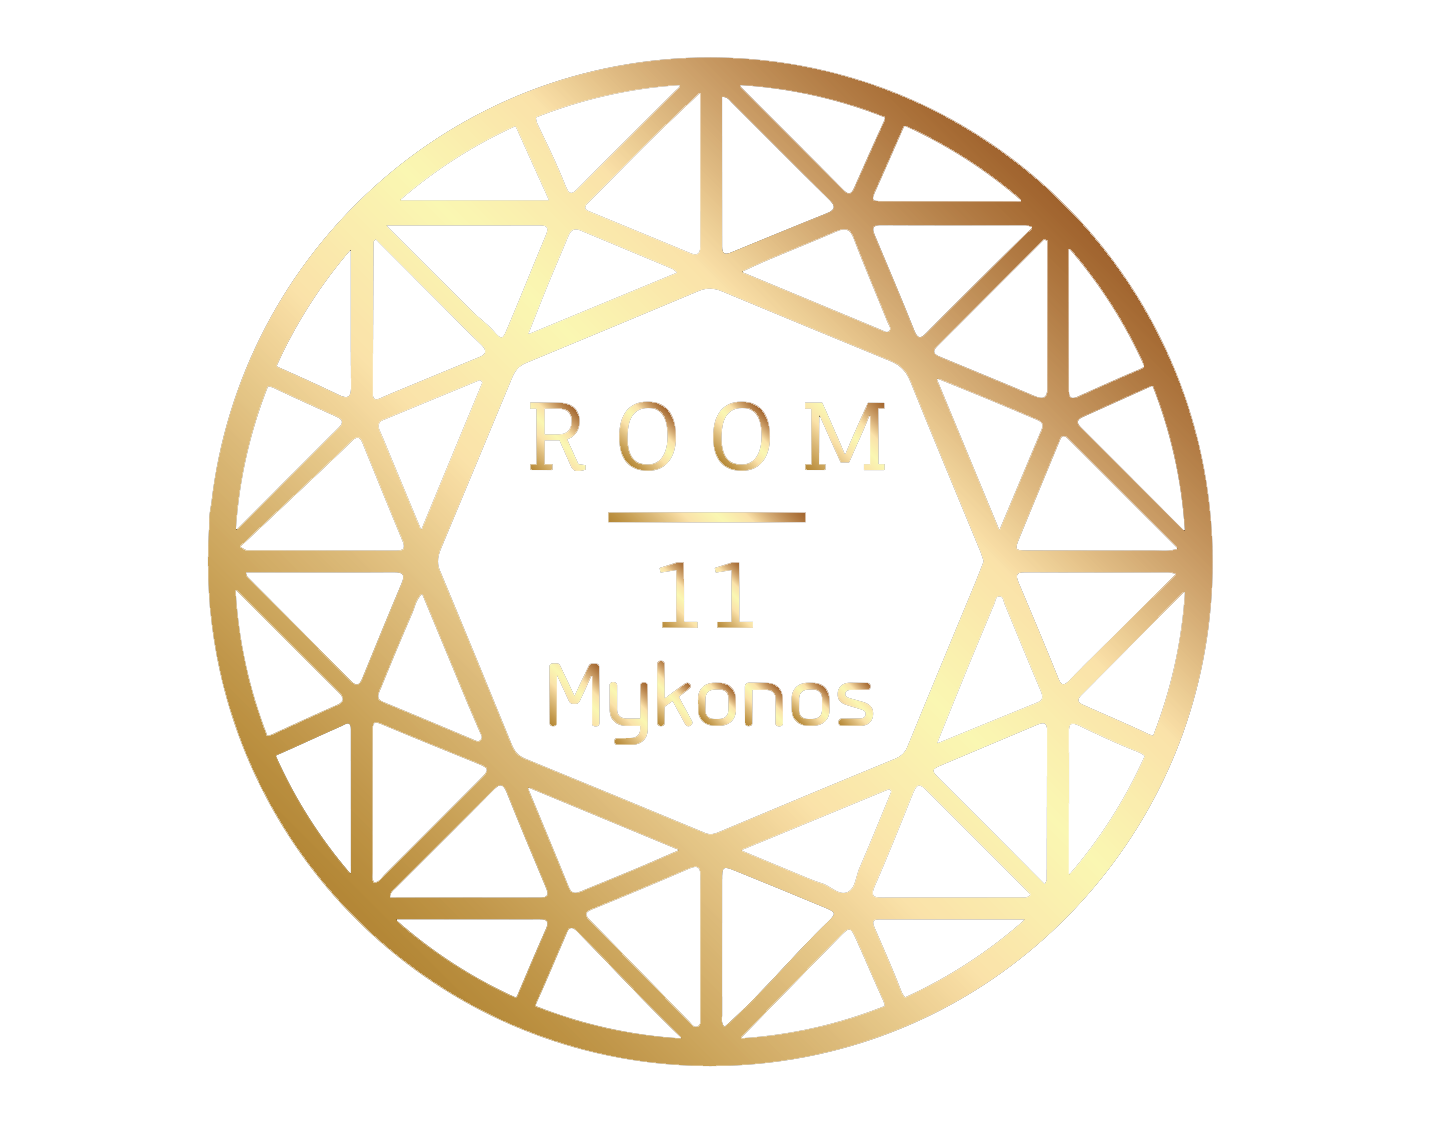 Room 11 | Accommodation in Mykonos